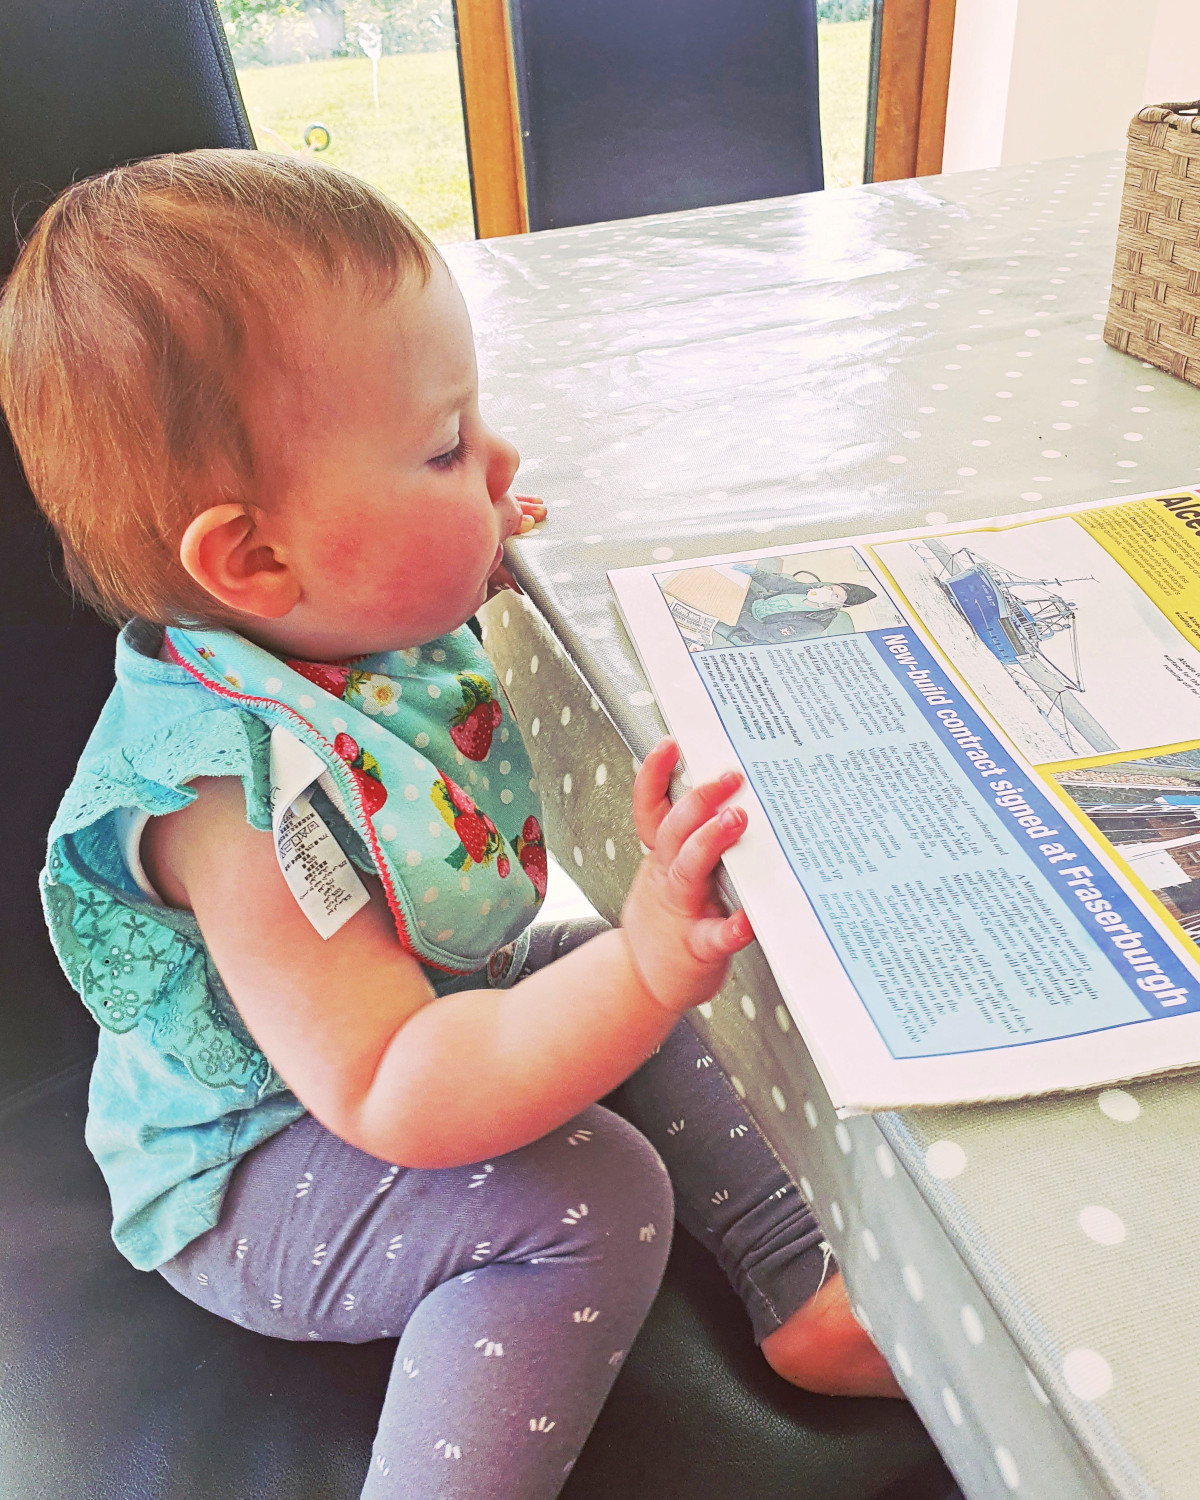 One-year-old Eva Gallagher from Killybegs, Co Donegal, catching up on Fishing News. (Ailbhe Kennedy)